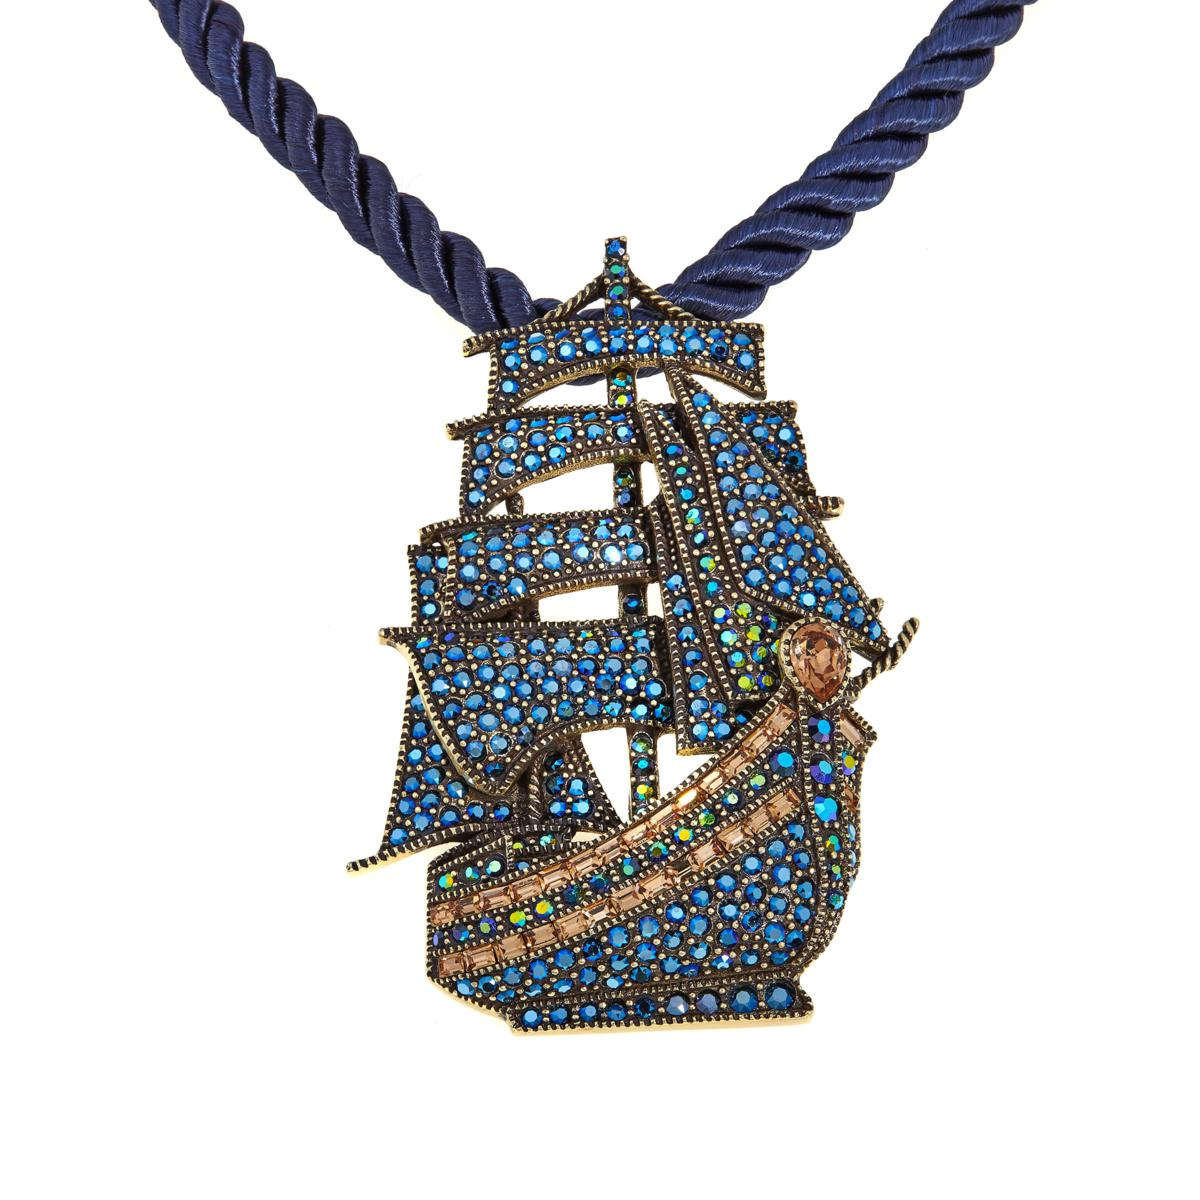 news pirates of the caribbean collection from hsn now